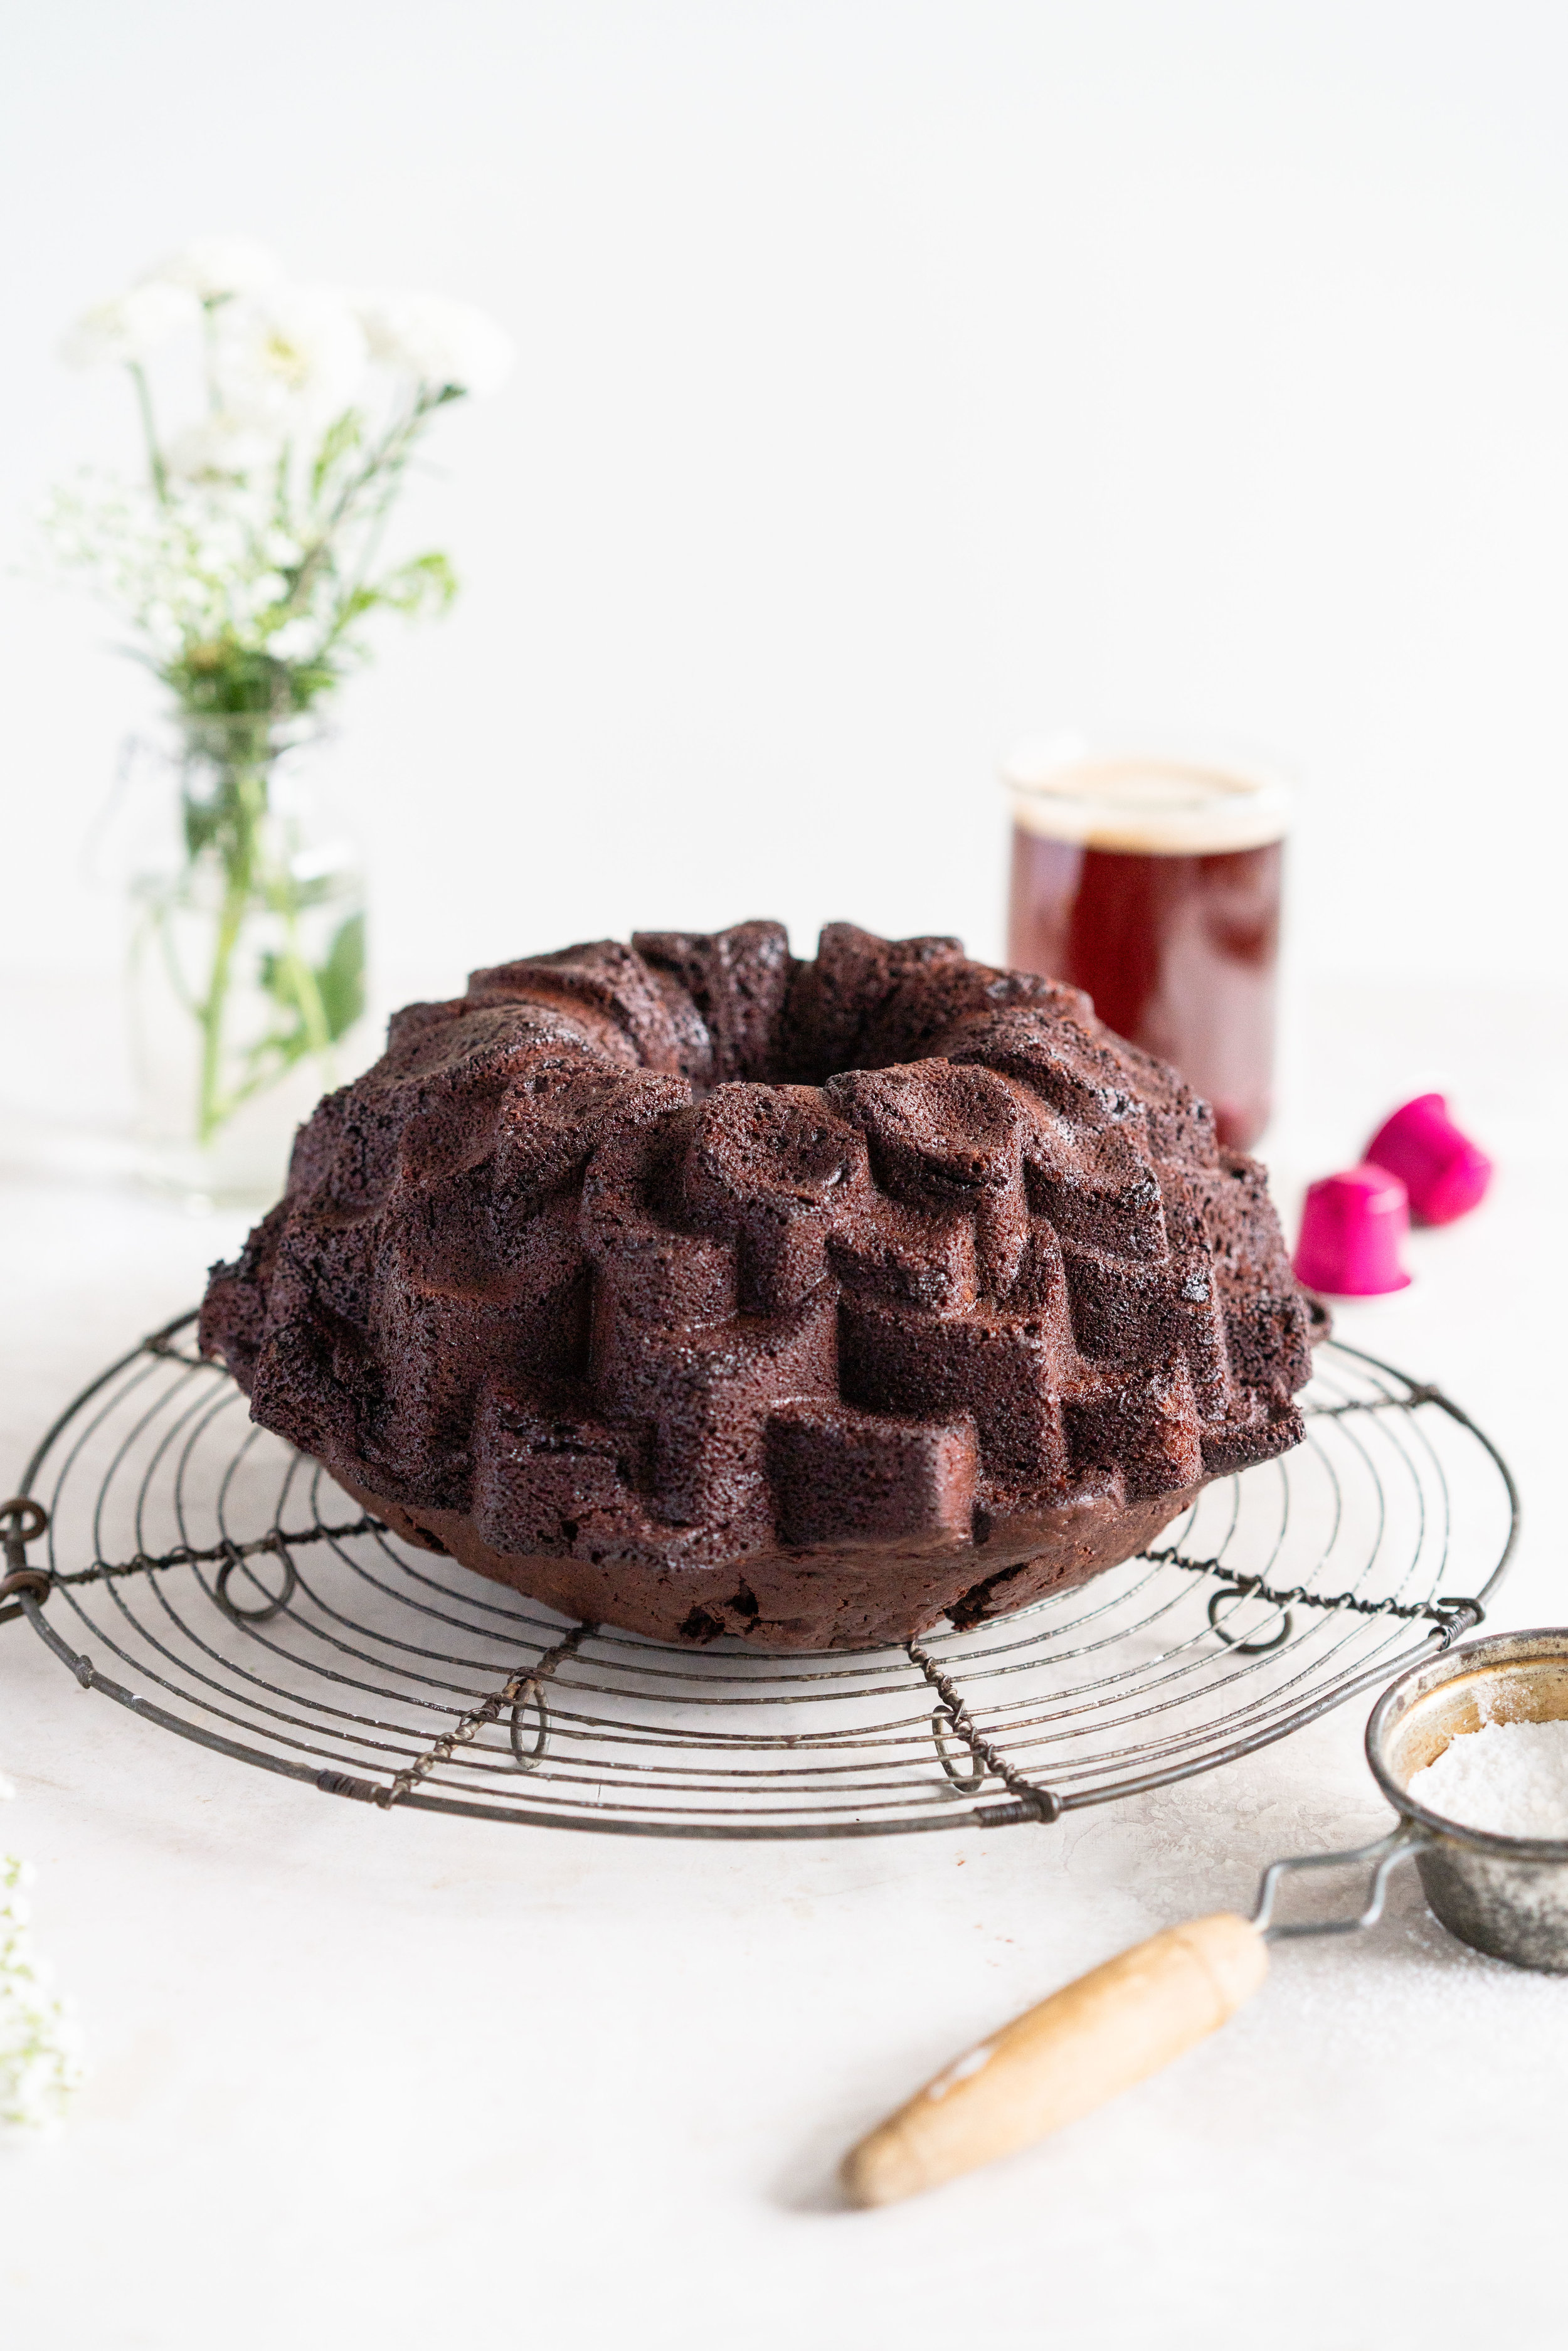 Nutella Chocolate Bundt Cake - this easy stir together bundt cake would be perfect for Mother's day or for any time that you need a sweet treat. It comes together super quickly, and is the perfect density thanks to the sour cream and nutella in the recipe. No mixer required - this one is a total crowd pleaser. #nutella #chocolatebundt #bundtcake